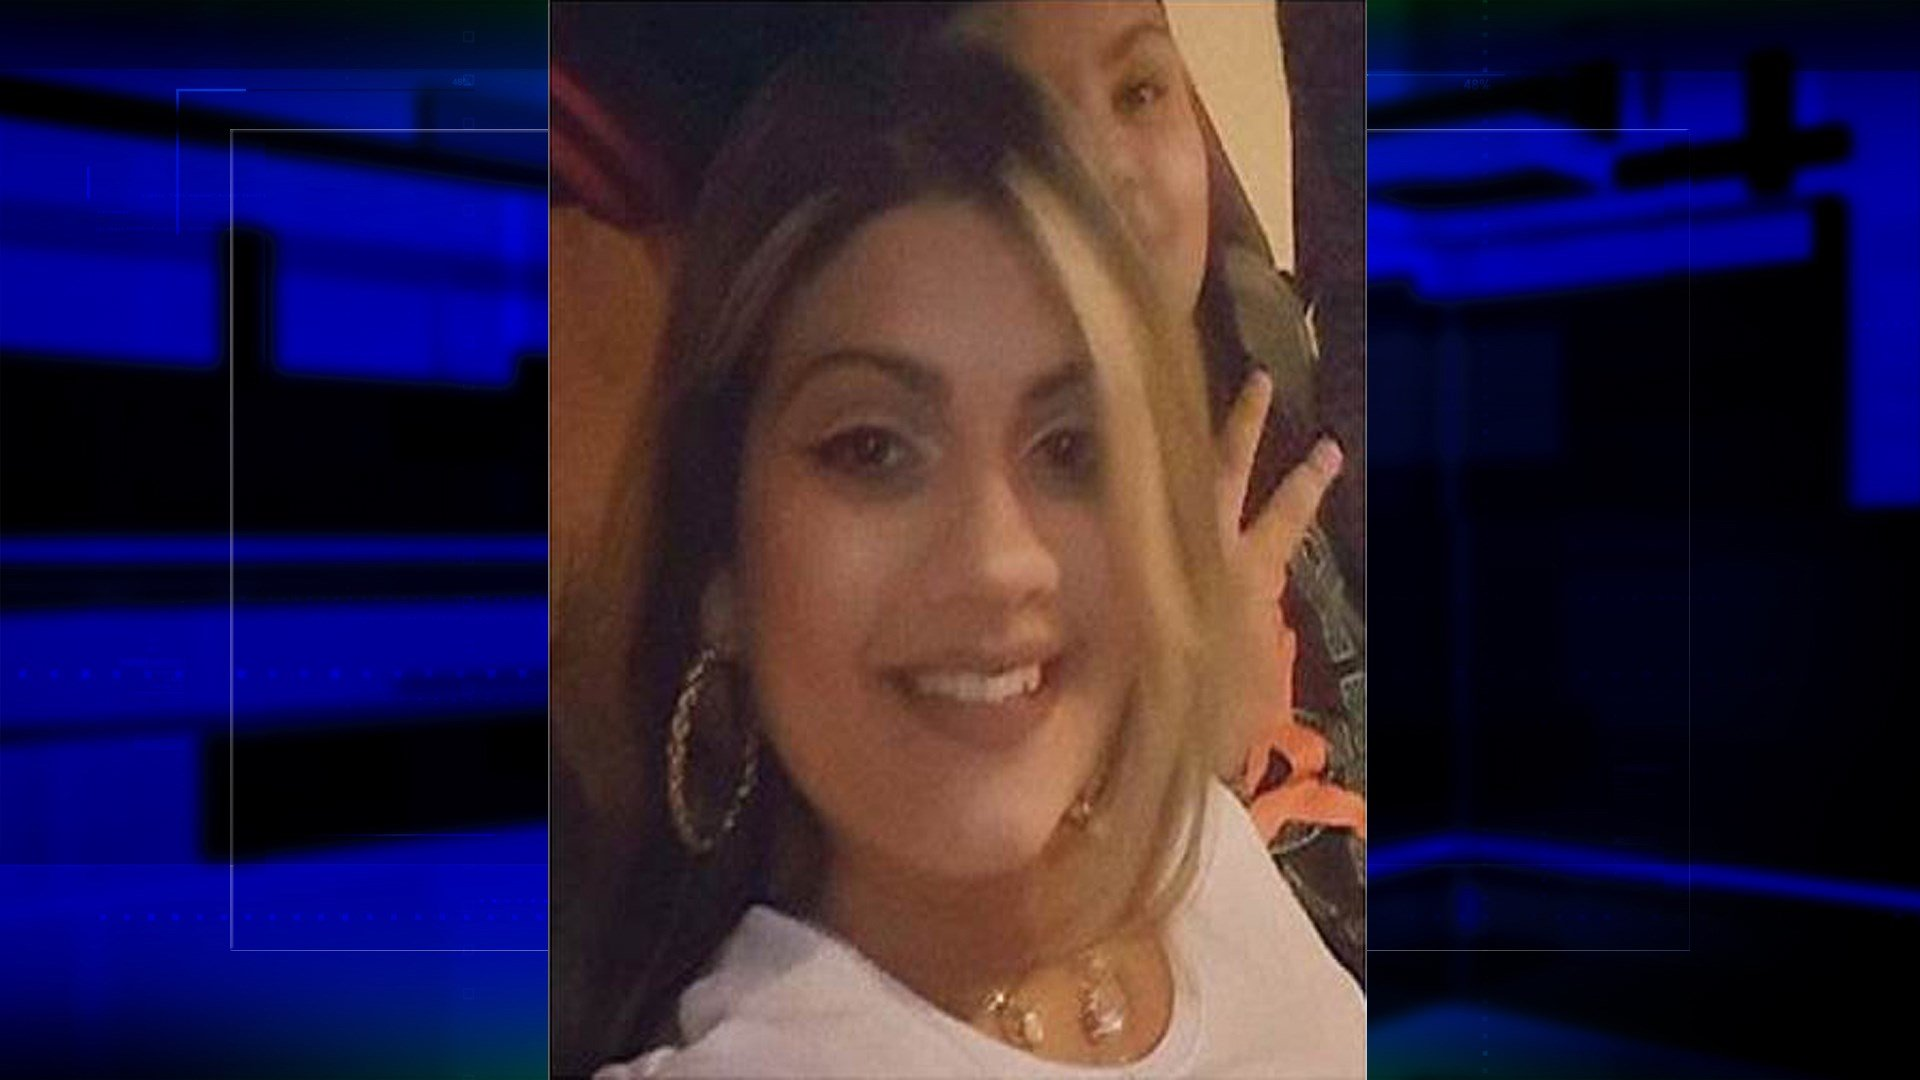 Amber Alert issued for 17-year-old from Houston area